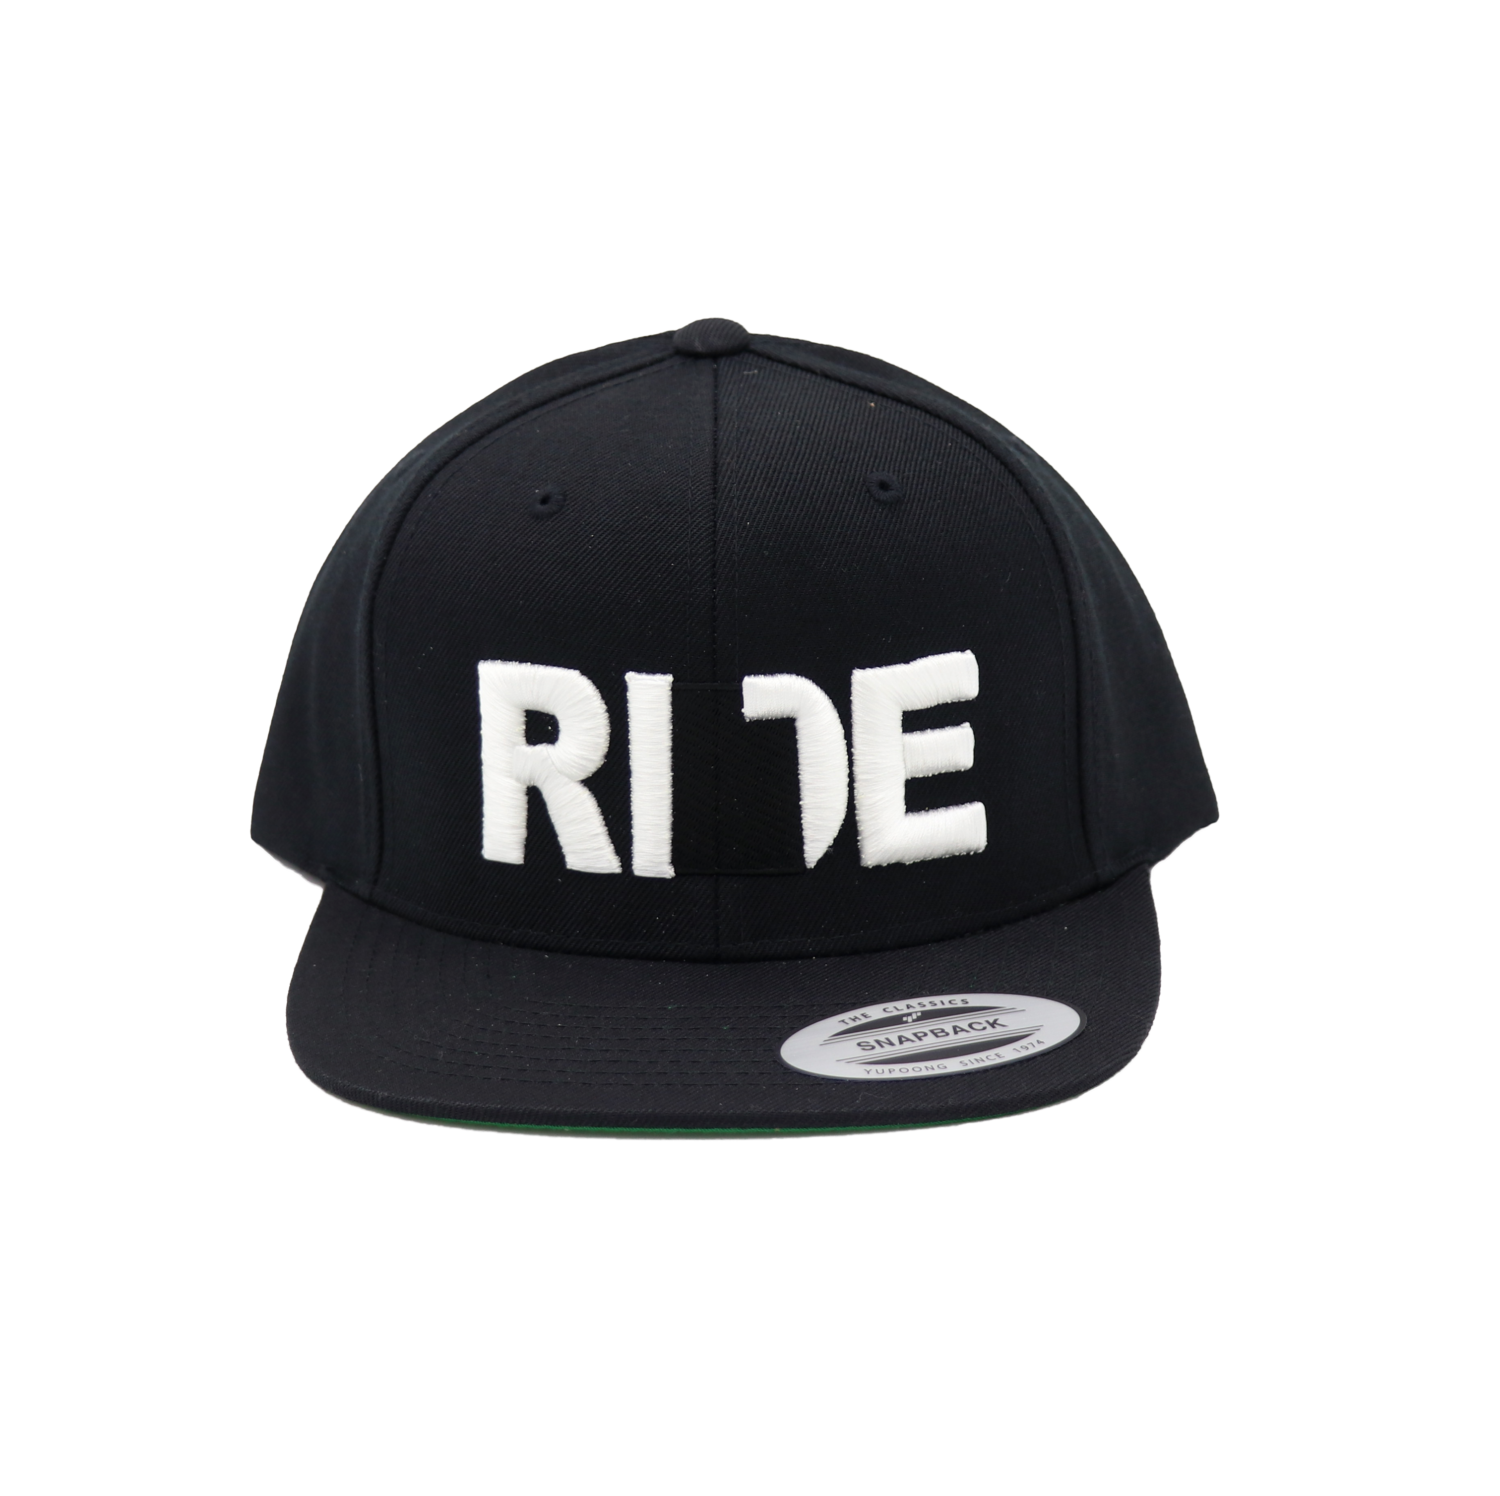 Ride Utah Hat Classic Embroidered  Snapback Flat Brim Hat Black/White